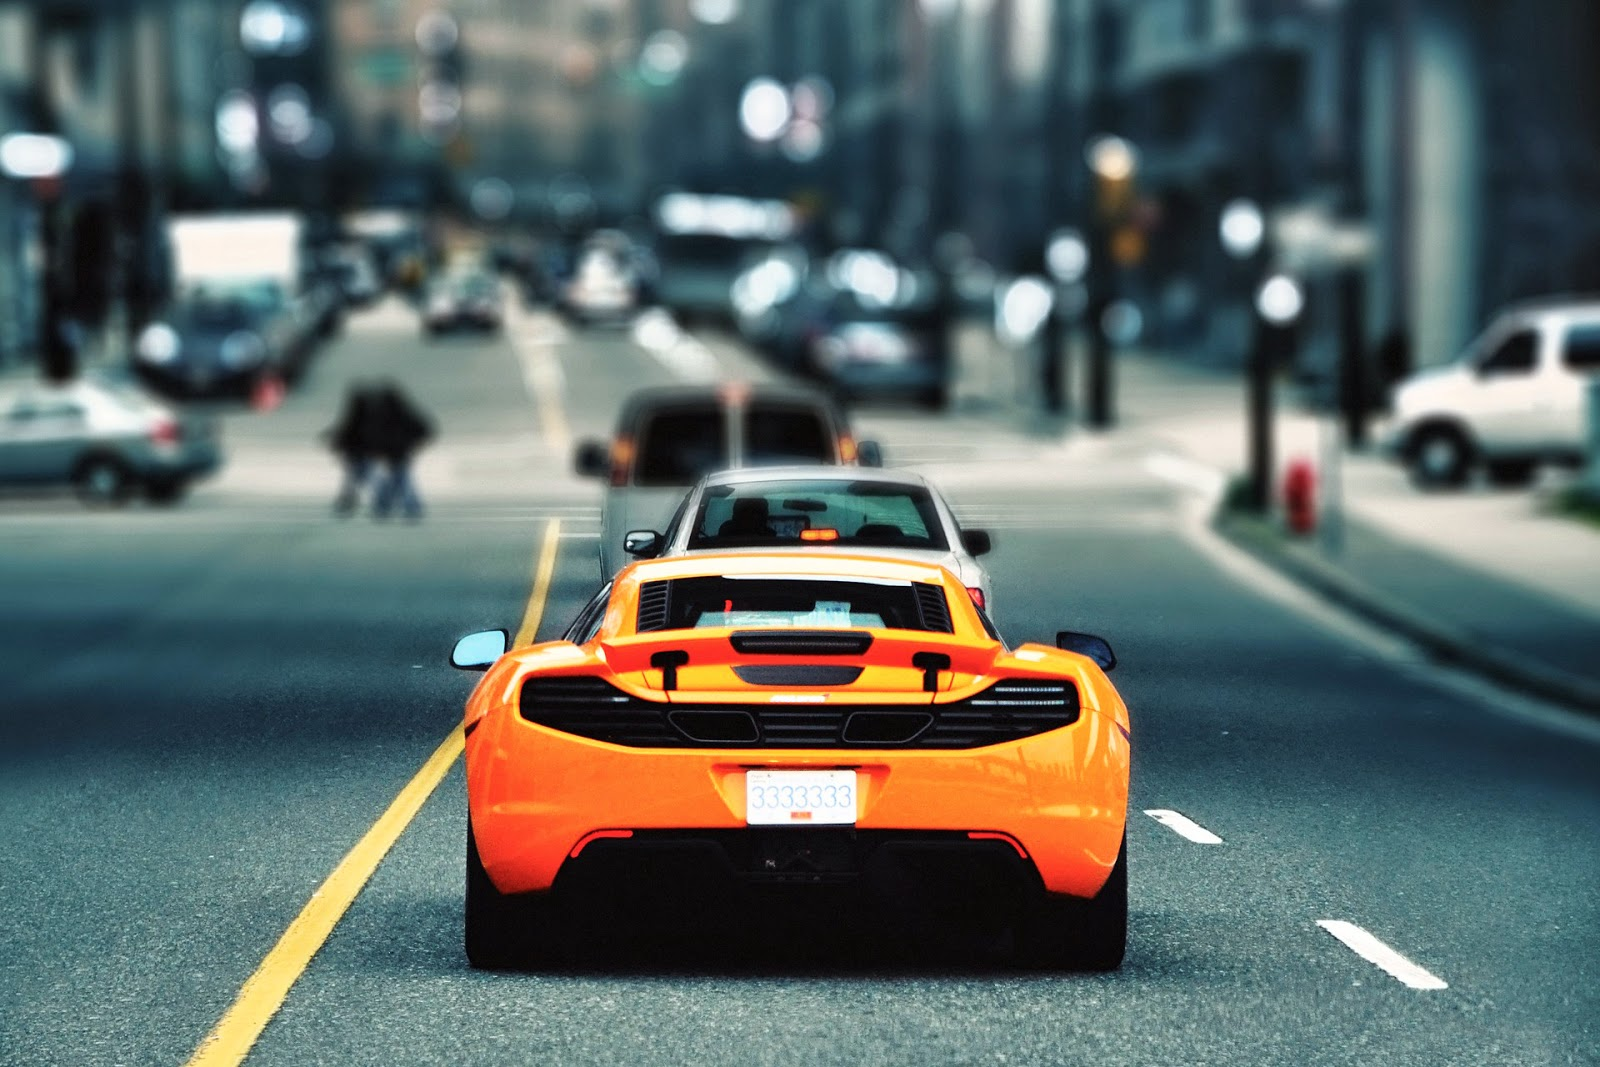 Allinallwalls : Car Wallpapers 2014, Iphone Car, Fast Cool Cars, Sports Cars,  Bumblebee Cars, Bugatti Cars, Desktop Wallpapers, Honda Cars Wallpapers, ...